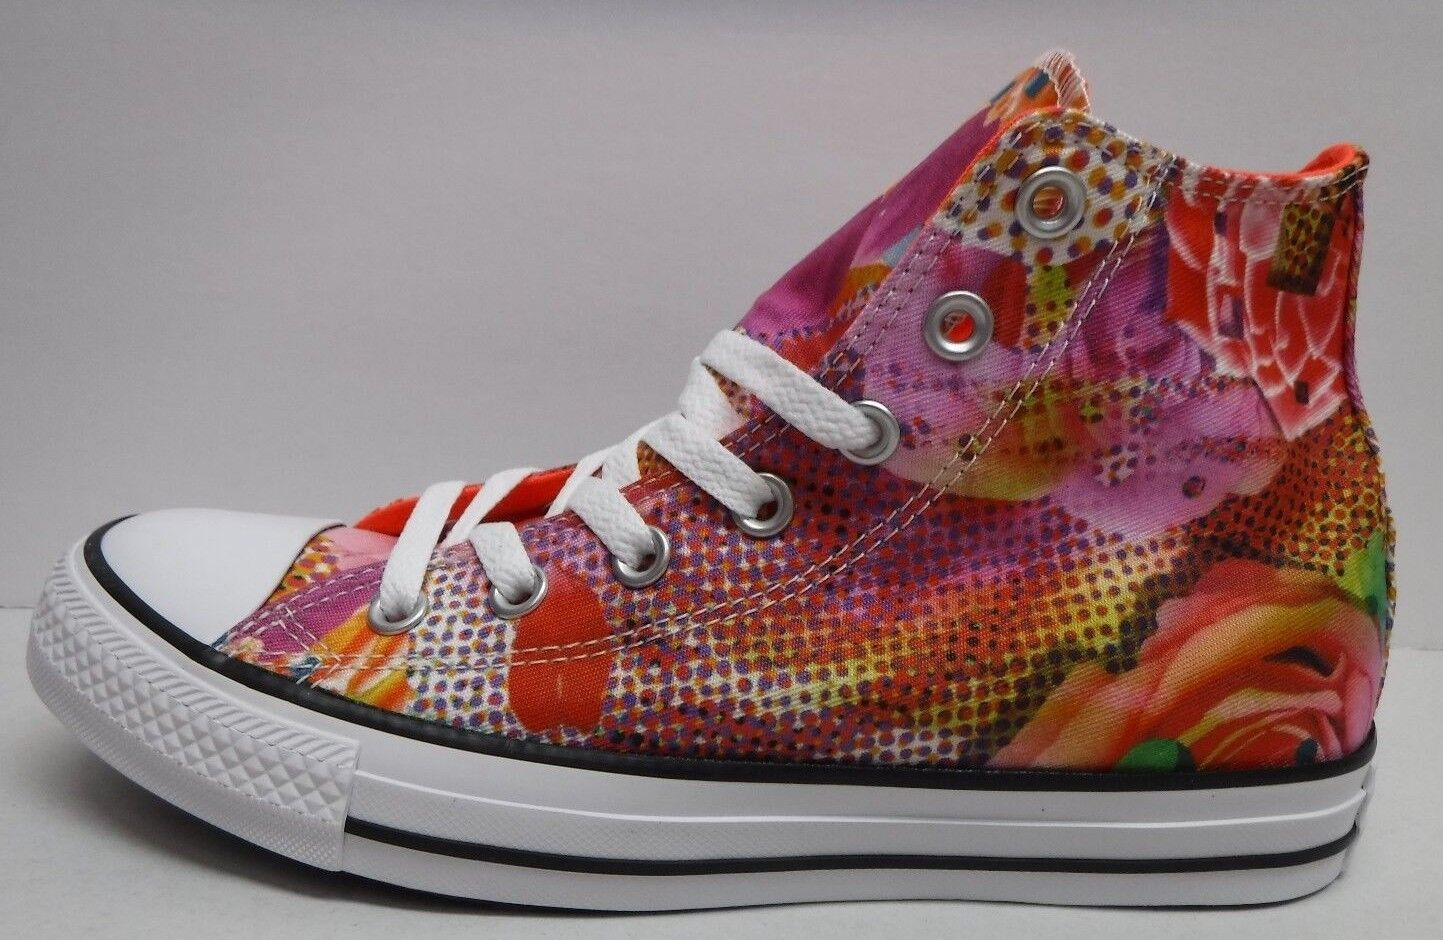 Converse All Star Size 7.5 Floral Hi Top Sneakers New Womens Shoes